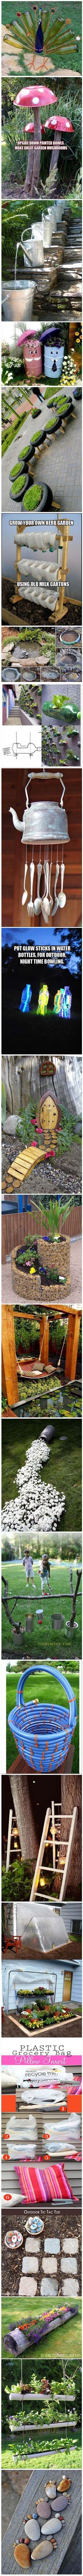 Great ideas for yard - peacock made with wine bottles to how to make a pond using an old tire